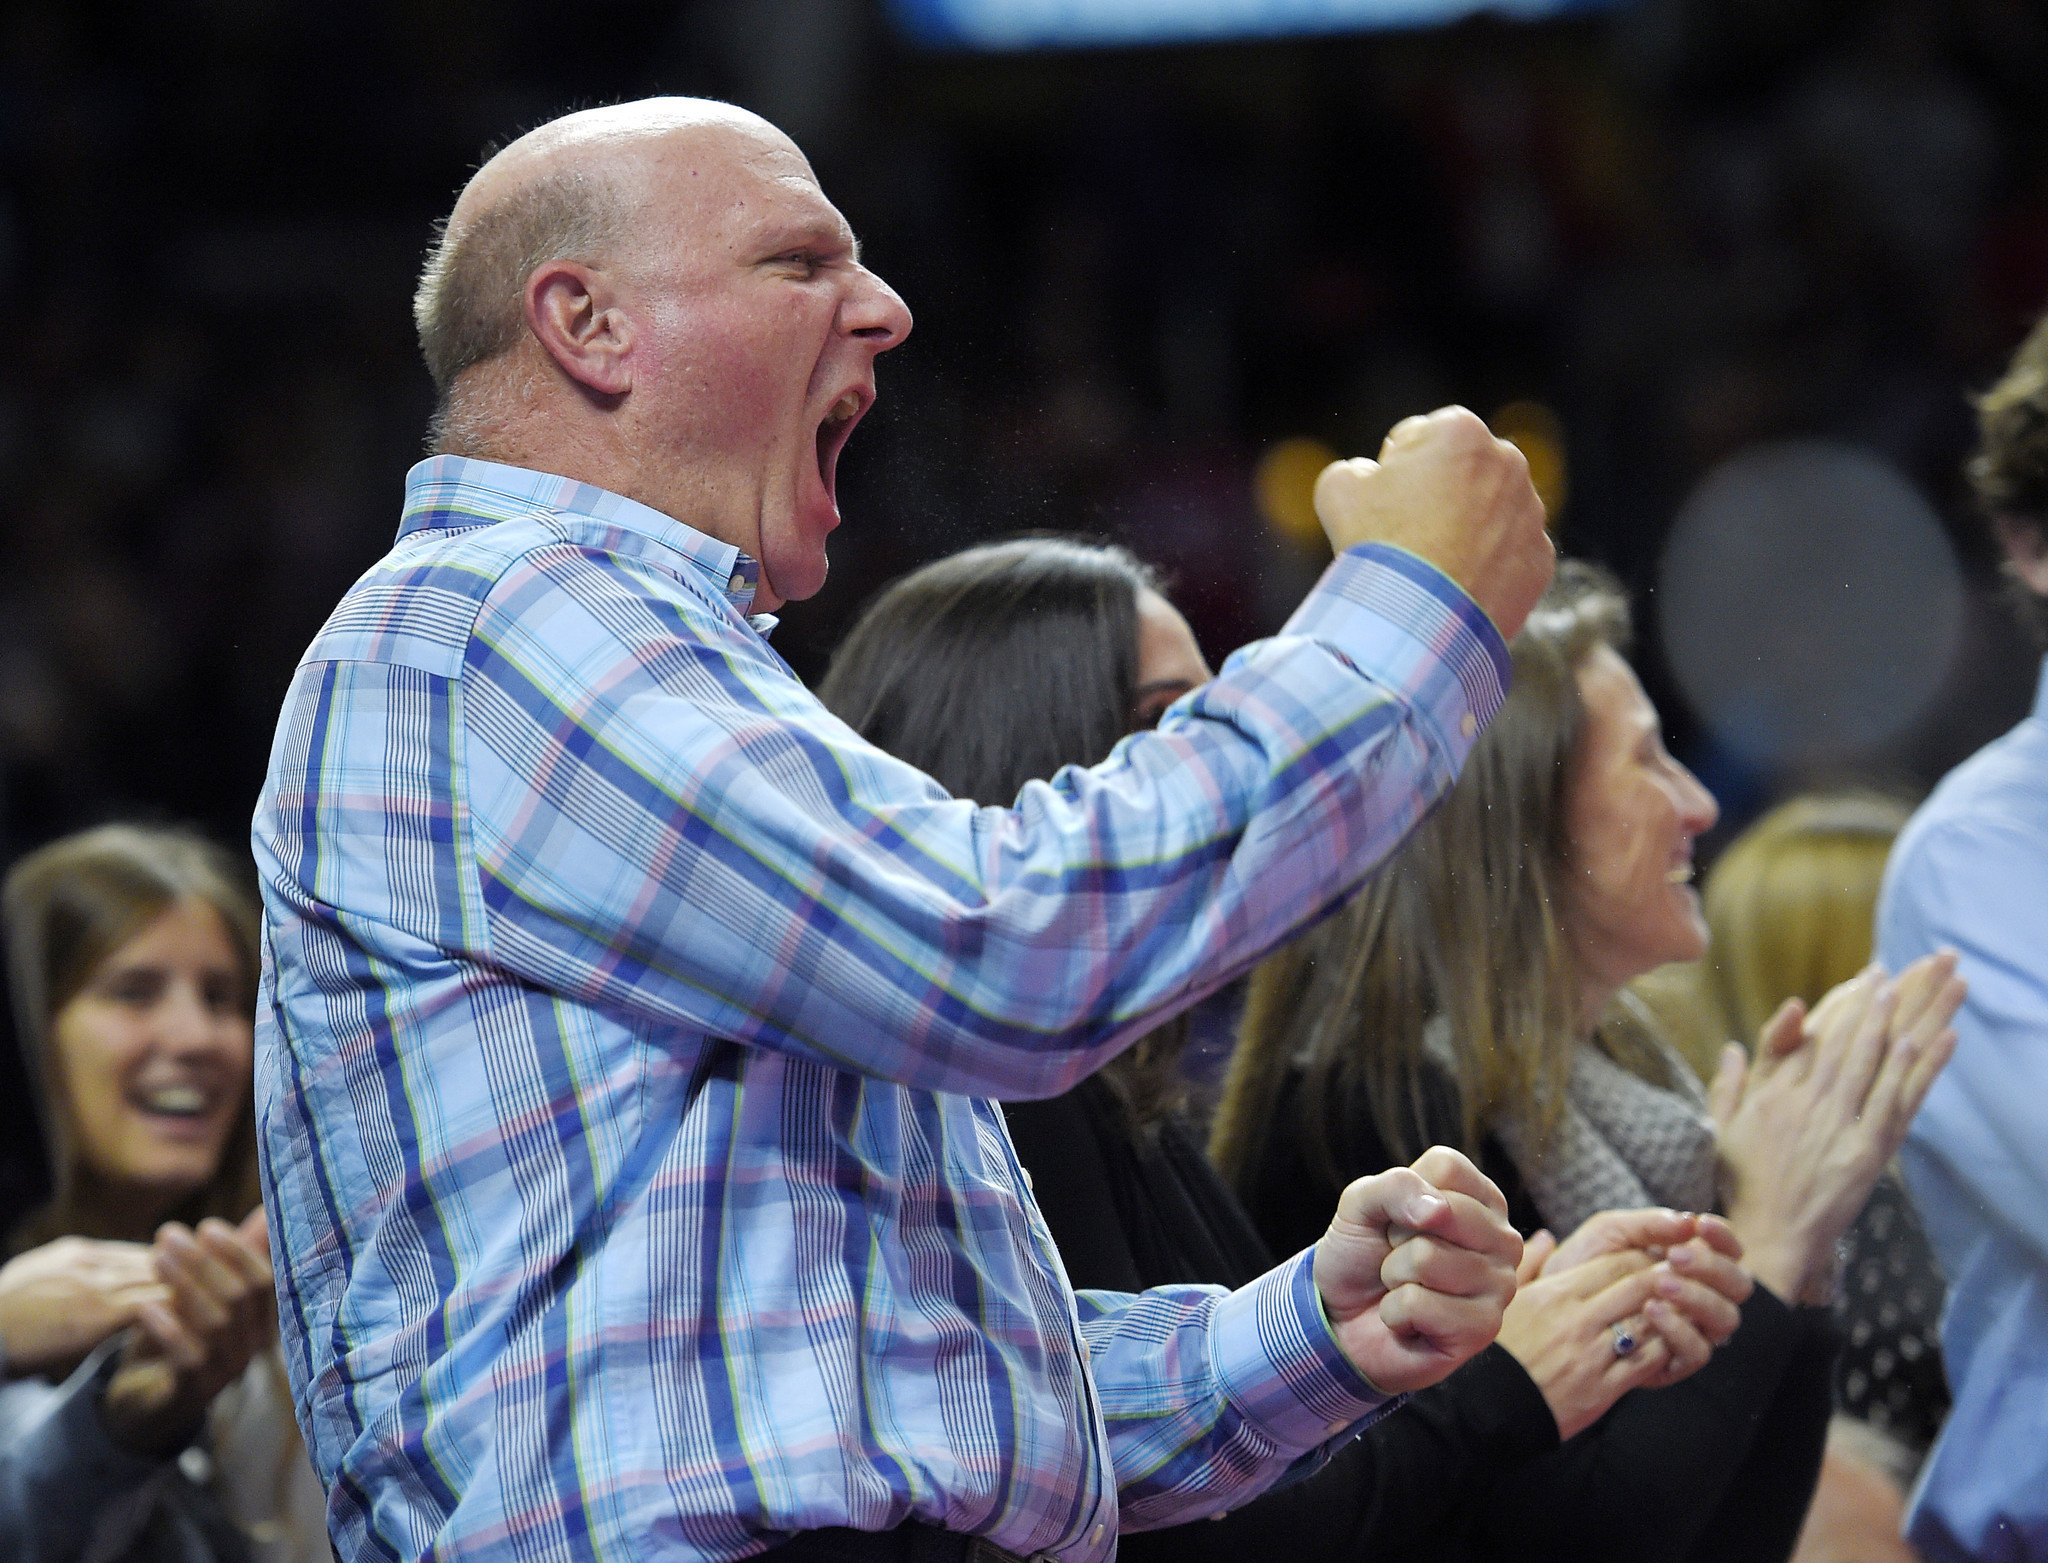 Steve Ballmer is richest team owner in world, according to Forbes